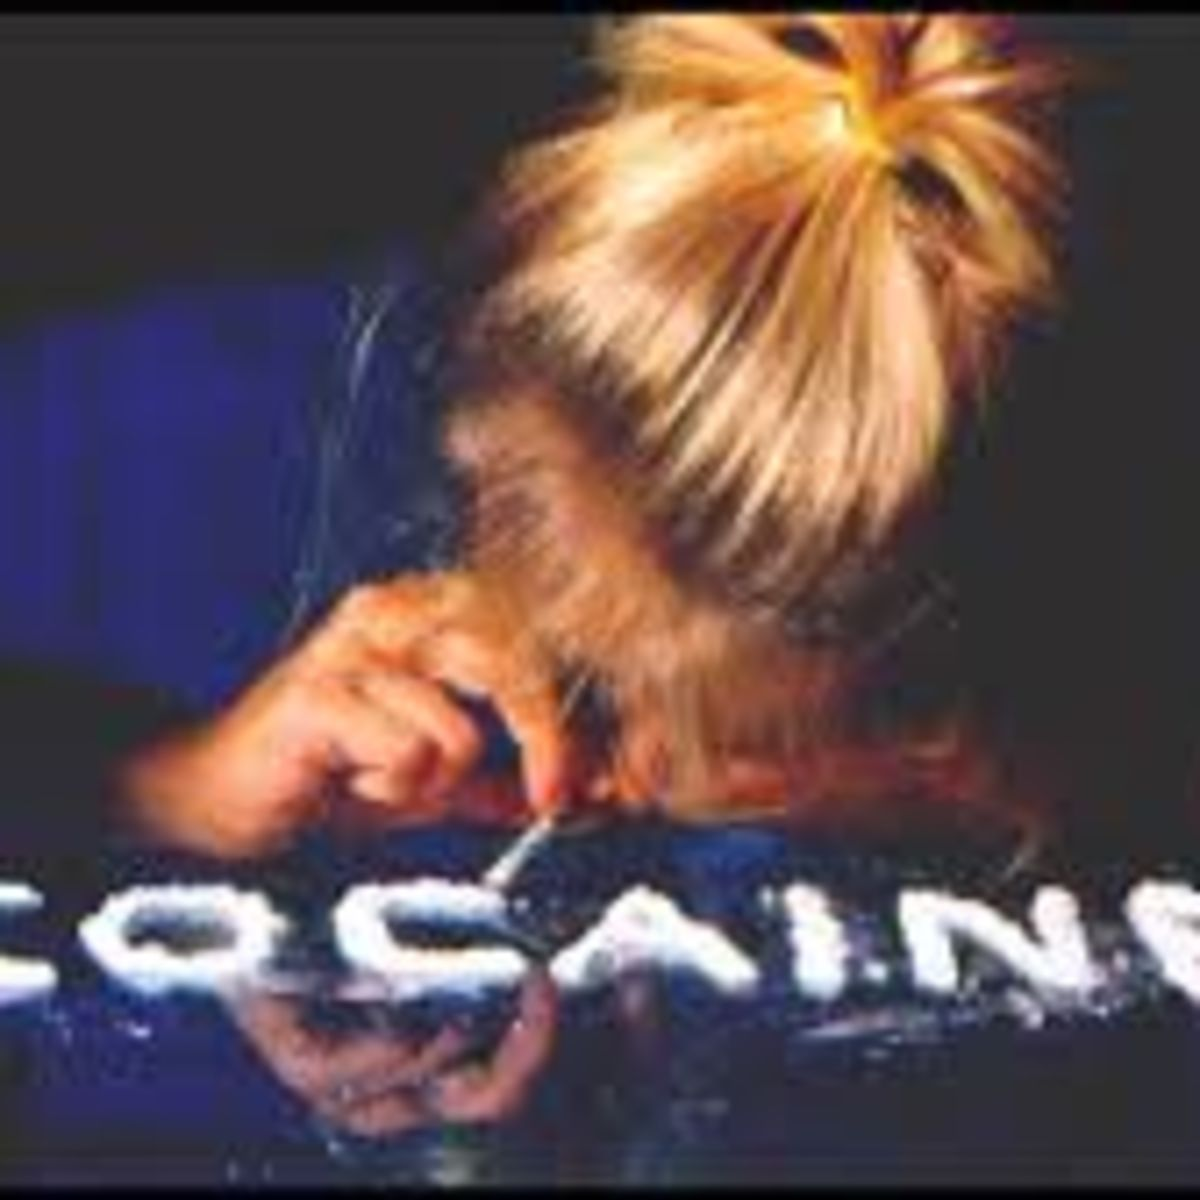 Blonde girl snorting cocaine, white powder, letters